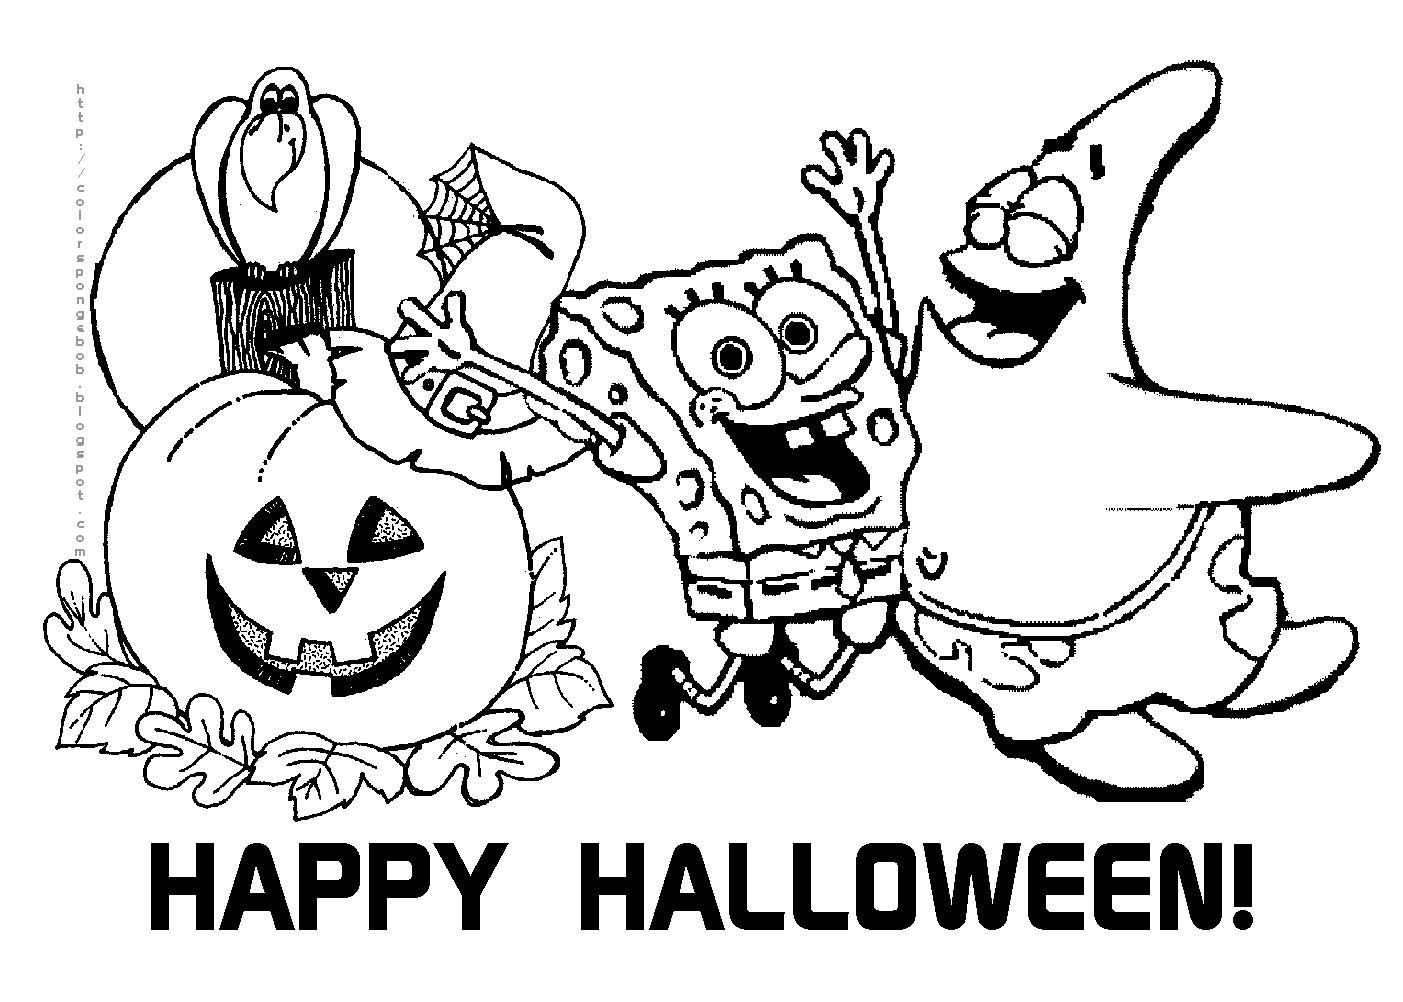 Free Printable Halloween Calendar | Halloween Spongebob Squarepants - Free Printable Halloween Coloring Pages